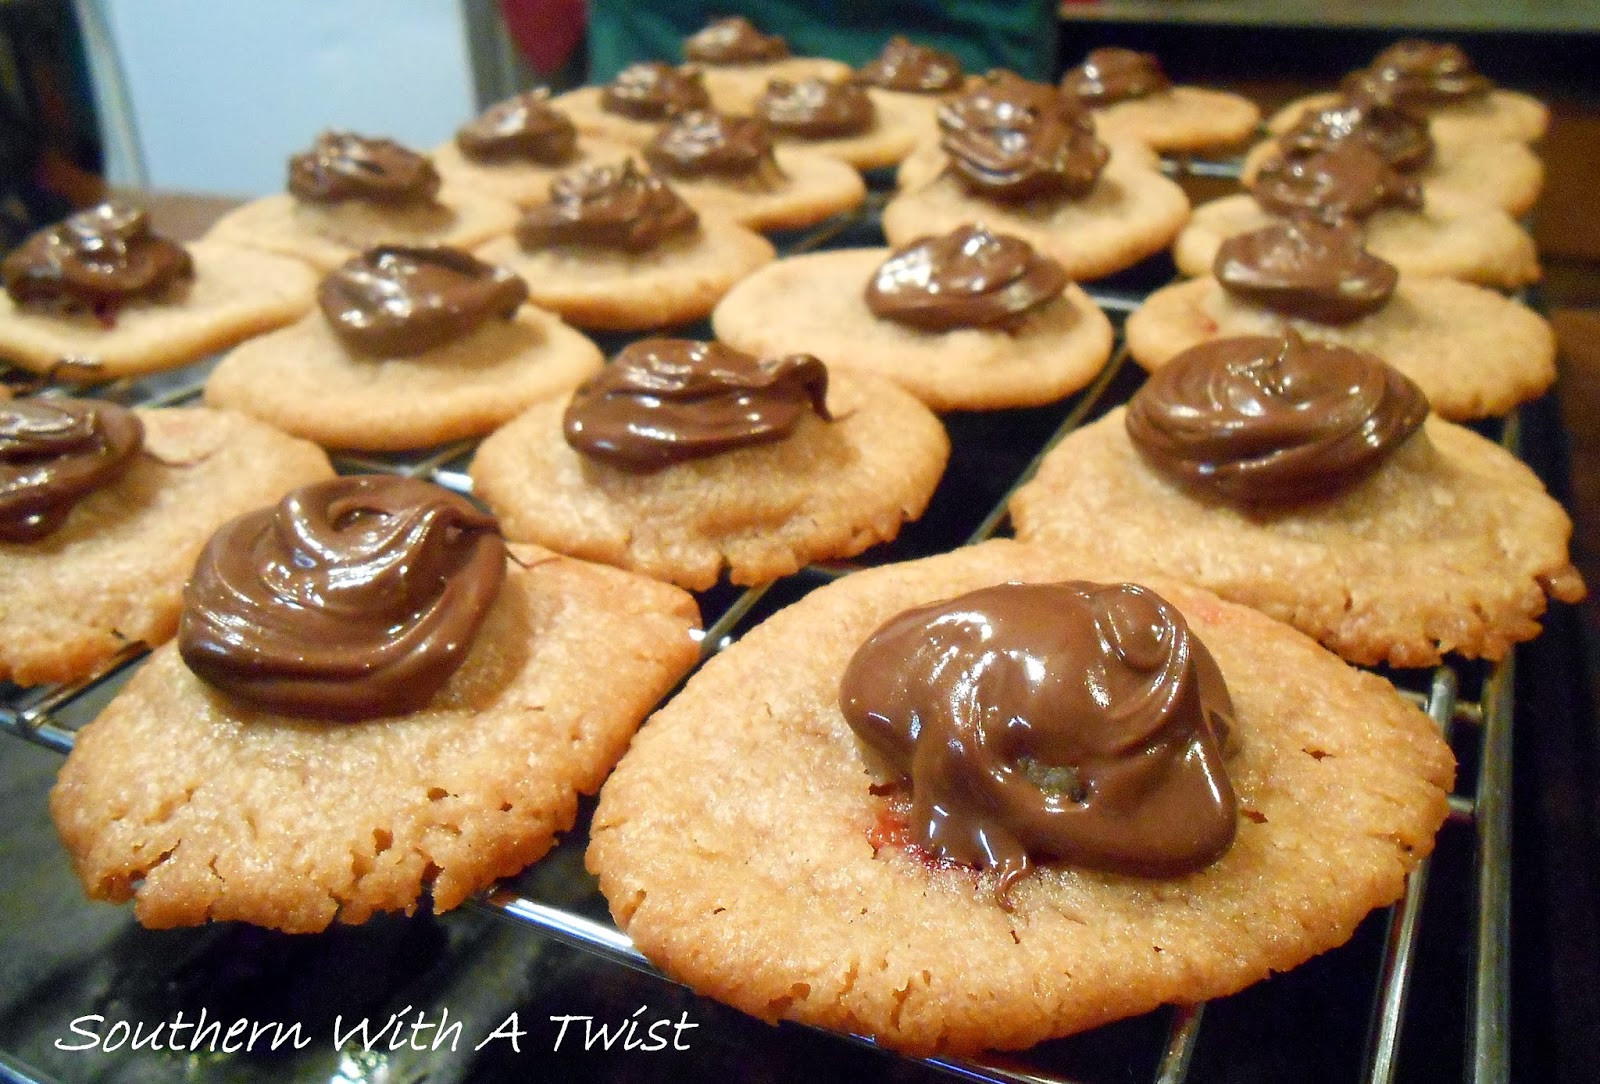 Chocolate Cover Cherry Cookies  Southern With A Twist Chocolate Covered Cherry Cookies